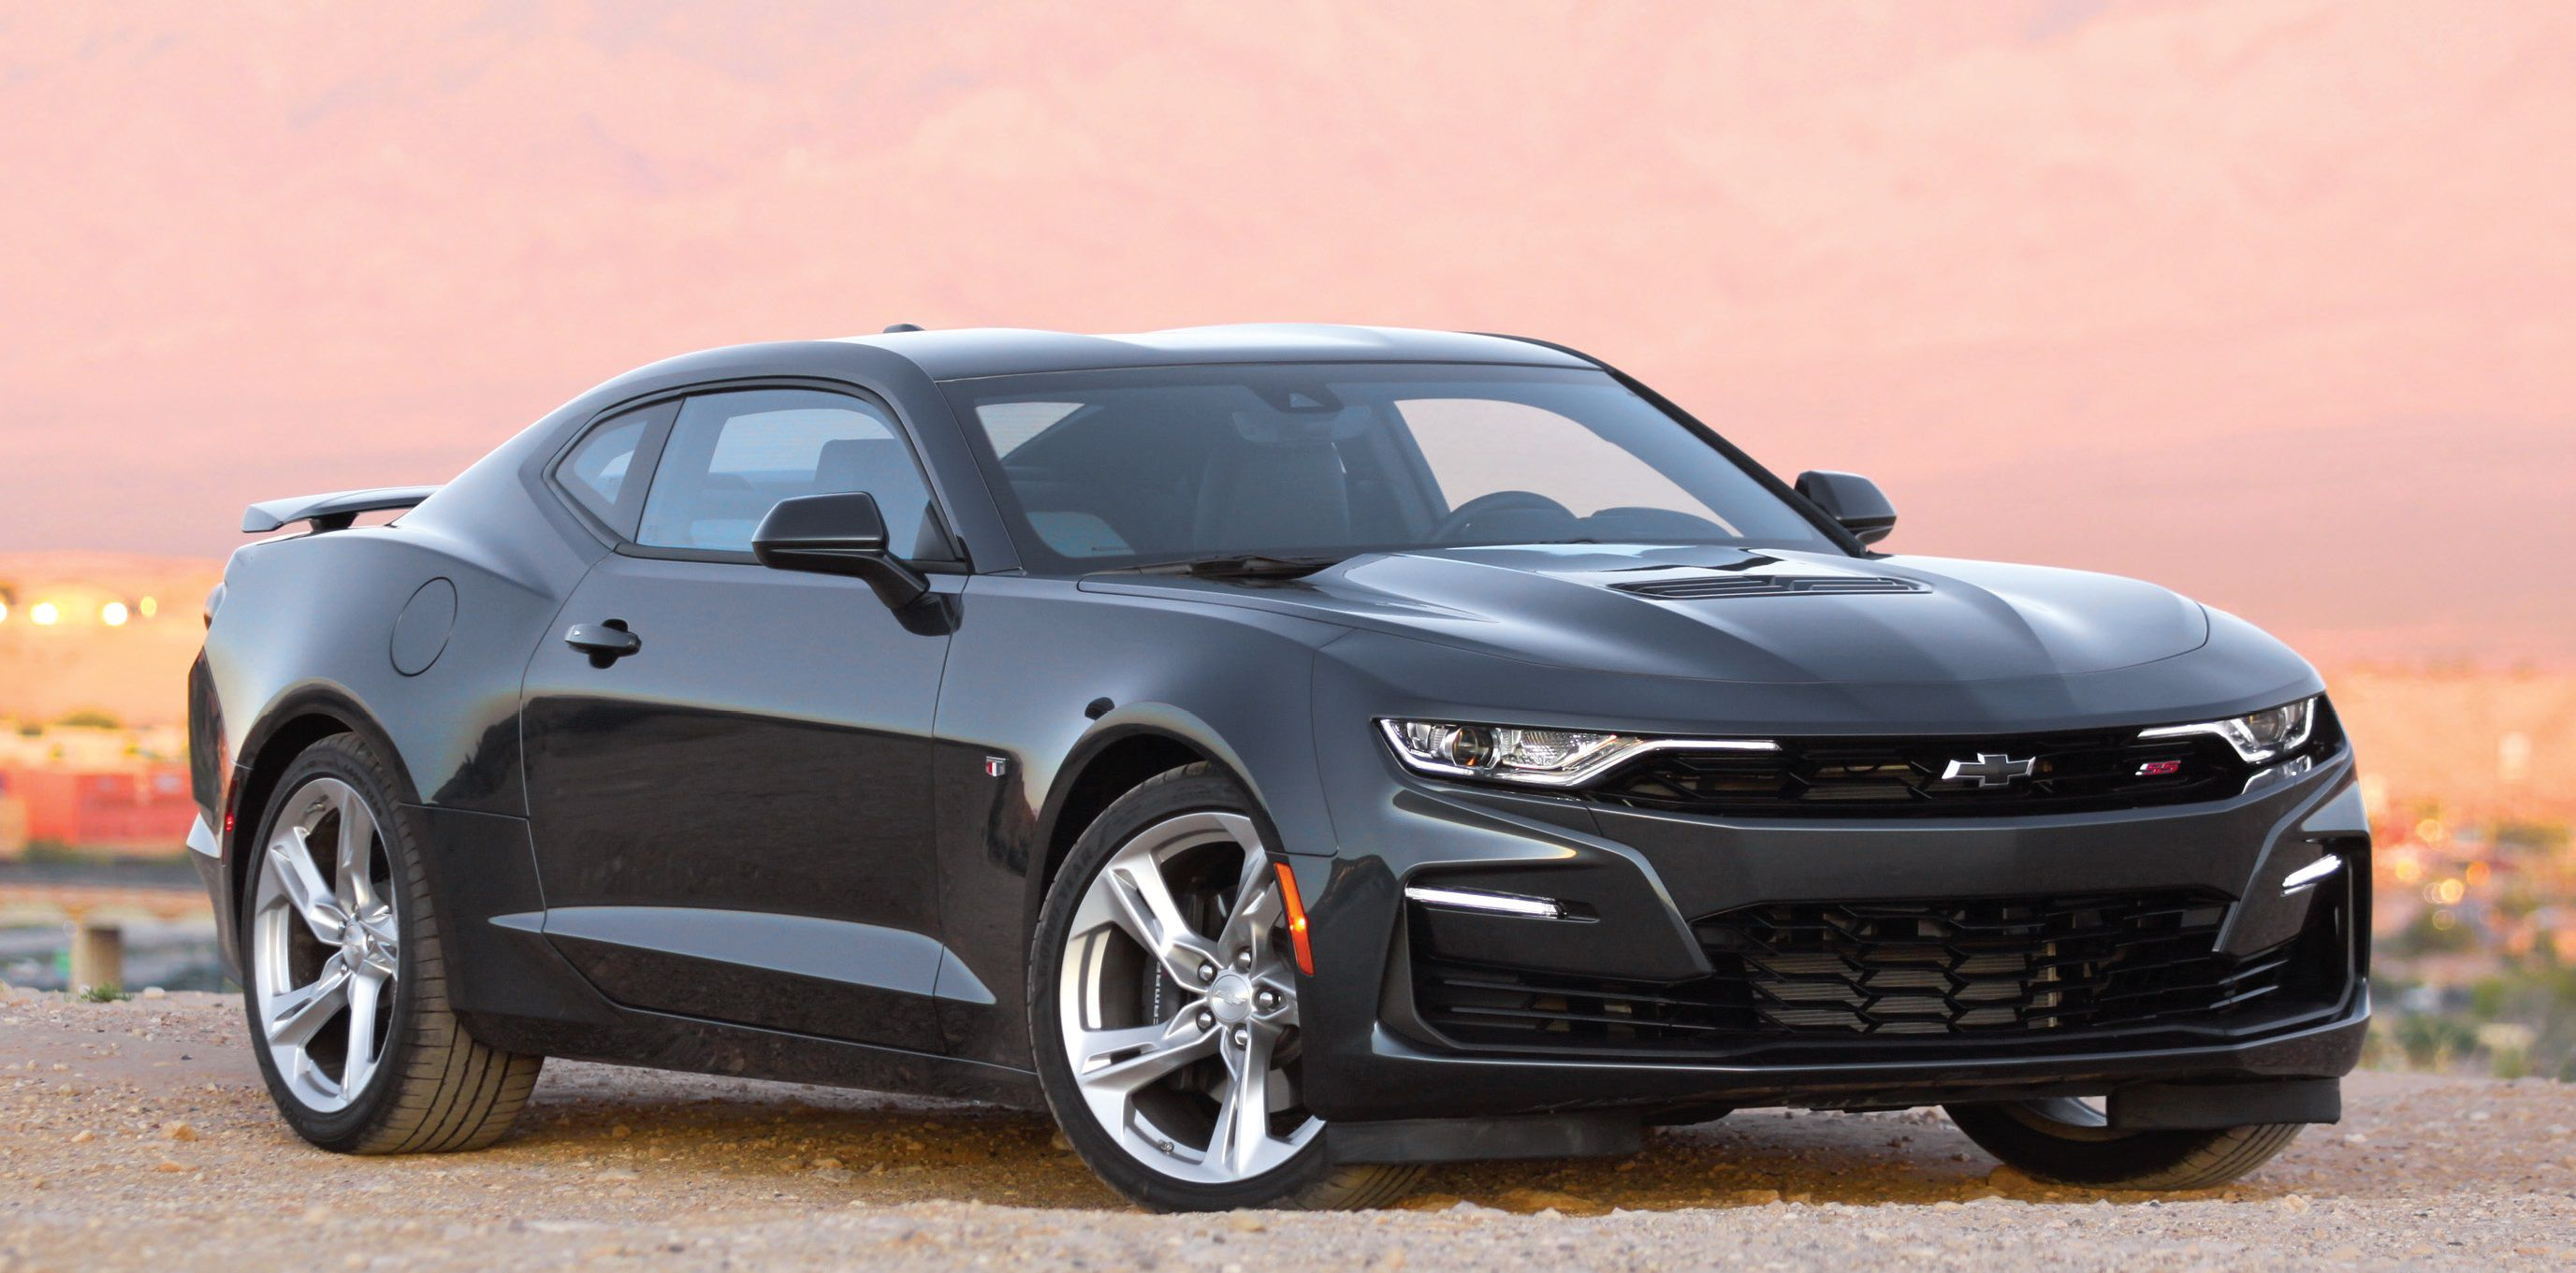 2020 The Camaro Ss Release Date and Concept